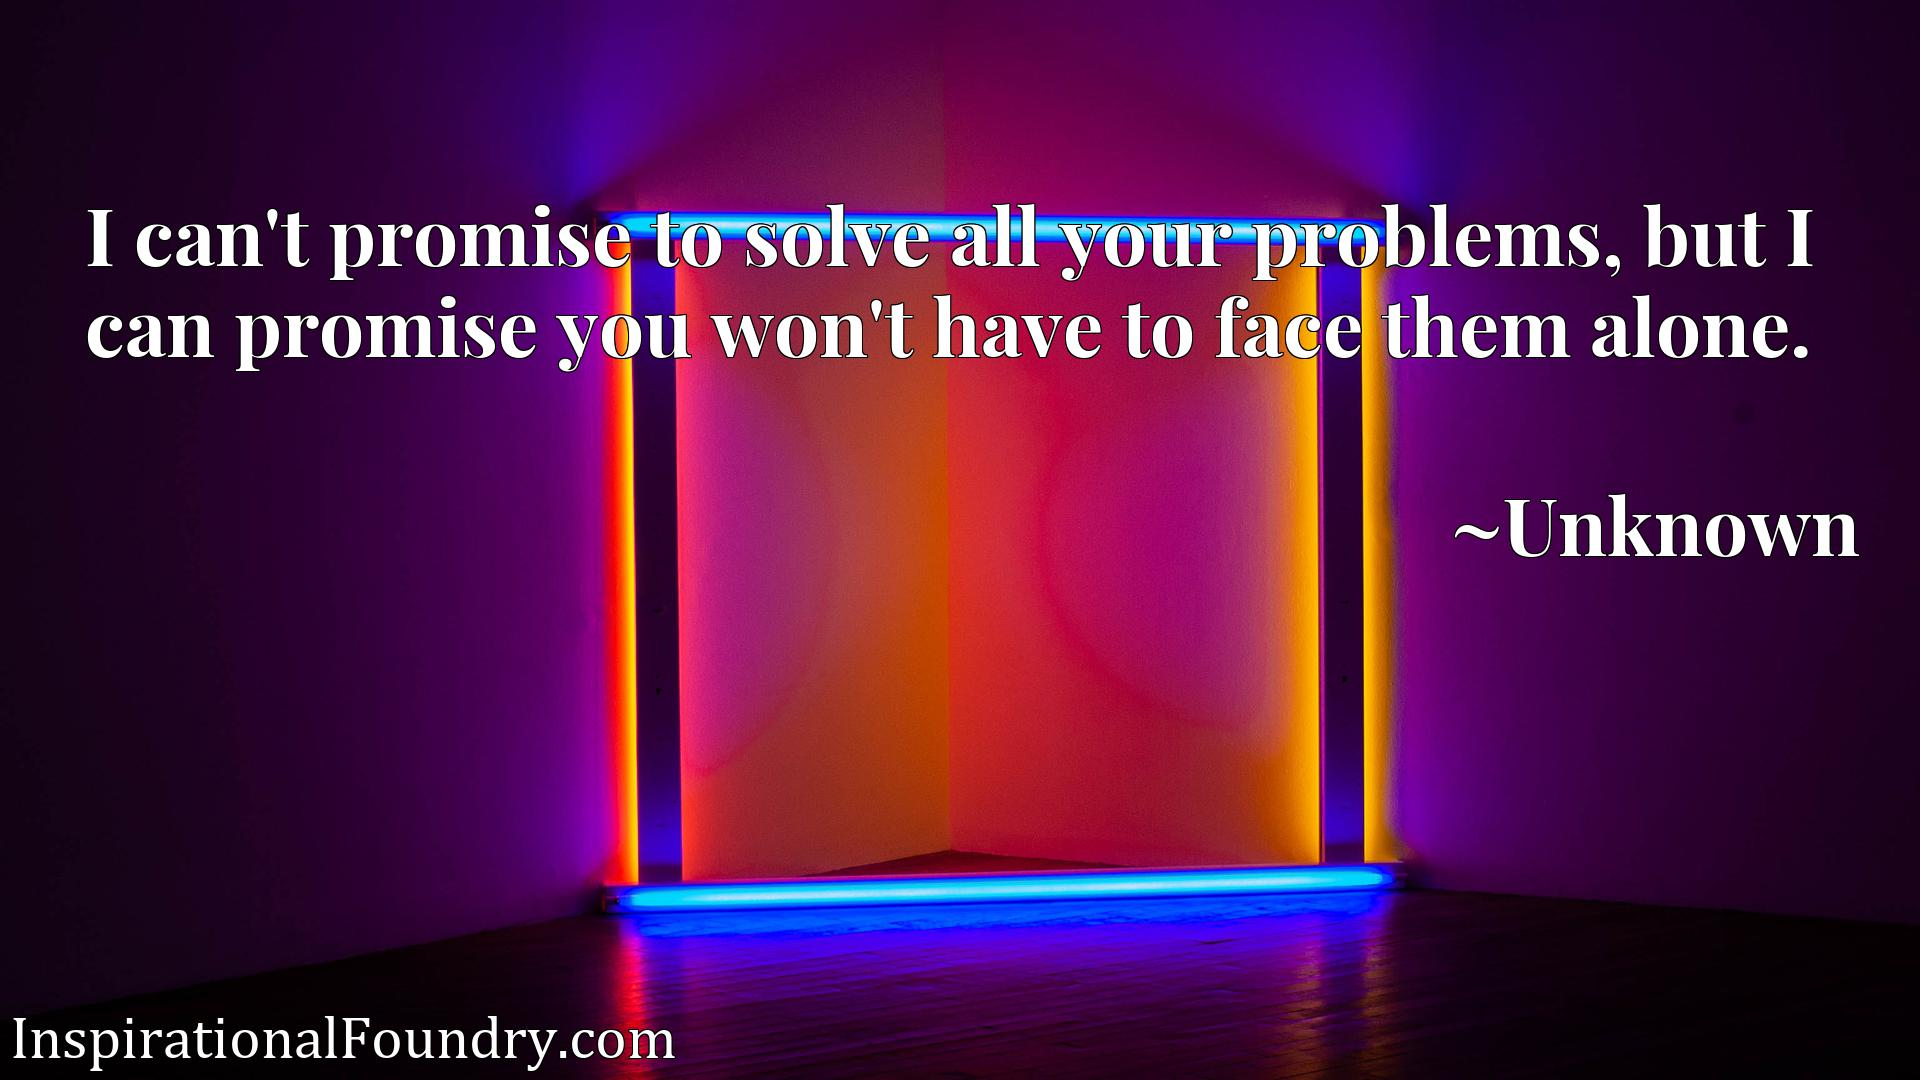 I can't promise to solve all your problems, but I can promise you won't have to face them alone.